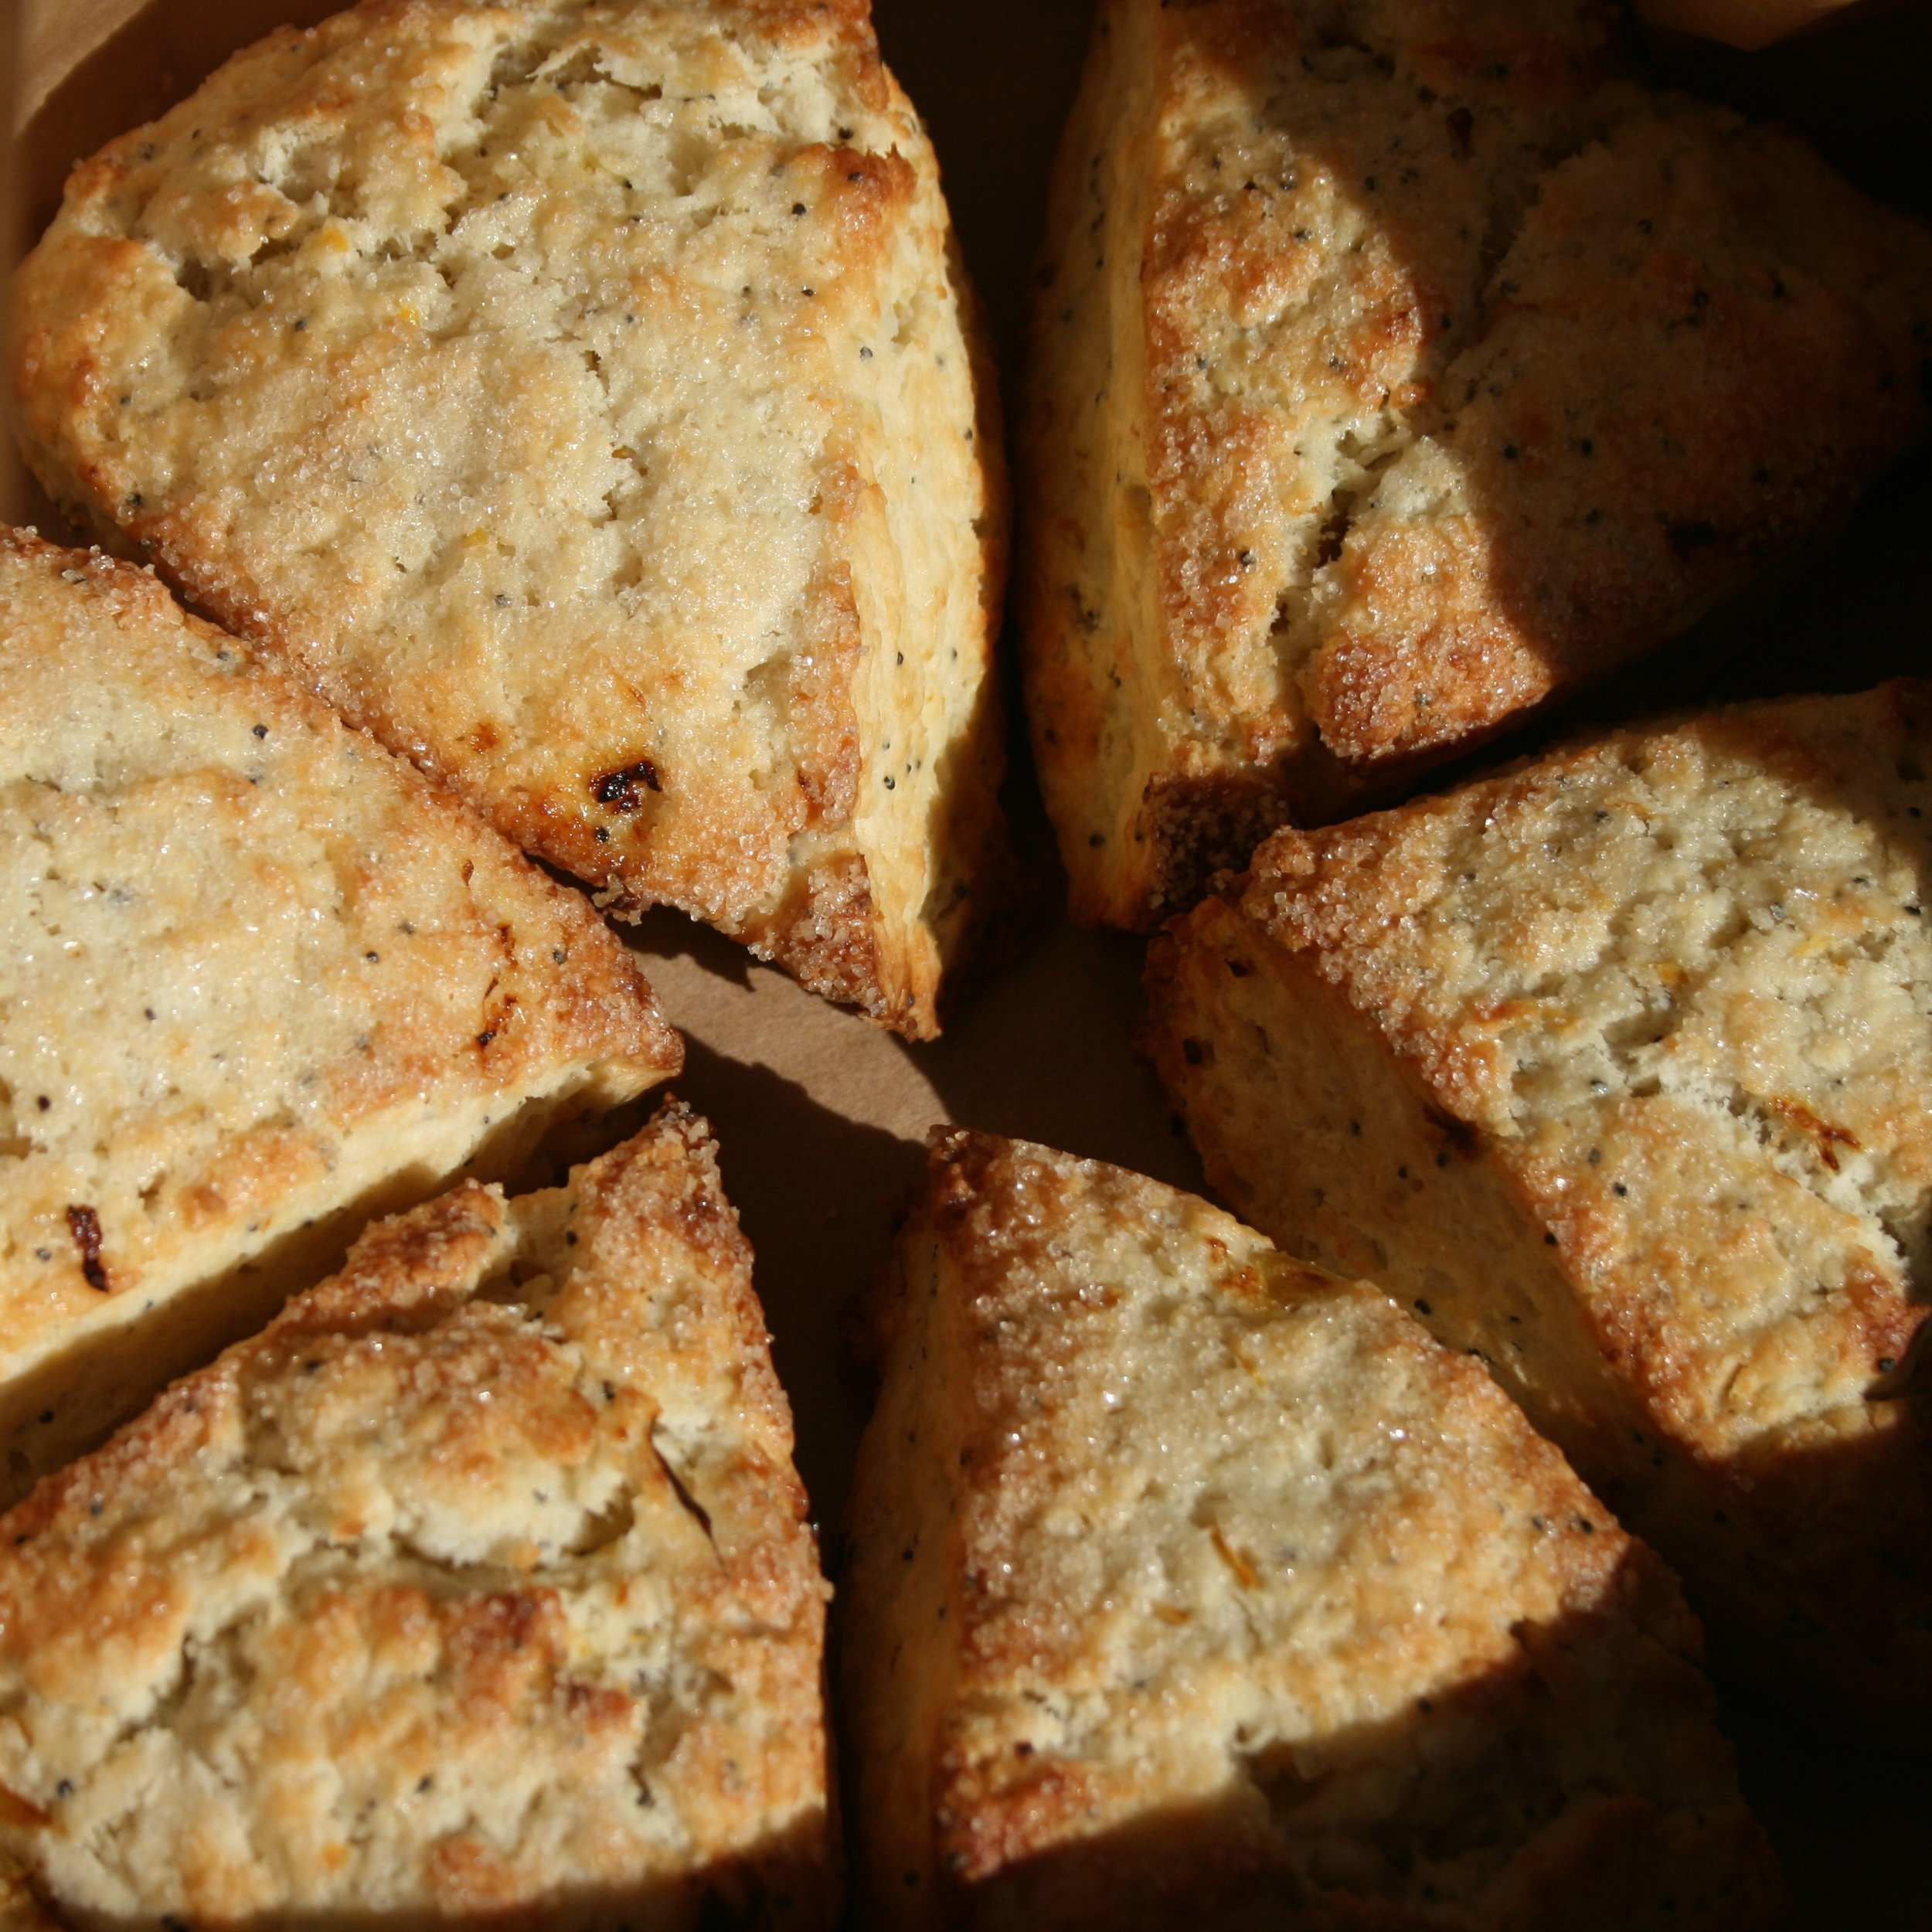 Scone of the Week: MAPLE PECAN - Summer is almost here which means it is time to say goodbye to Maple Pecan for a while. Enjoy one last hurrah with these delightfully nutty scones. We candy pecans in organic maple syrup and mix them in with our classic cream scones along with an extra swirl of maple for good luck. Enjoy them while you can!Add to your subscription: 3 for $7.50 or 6 for $15